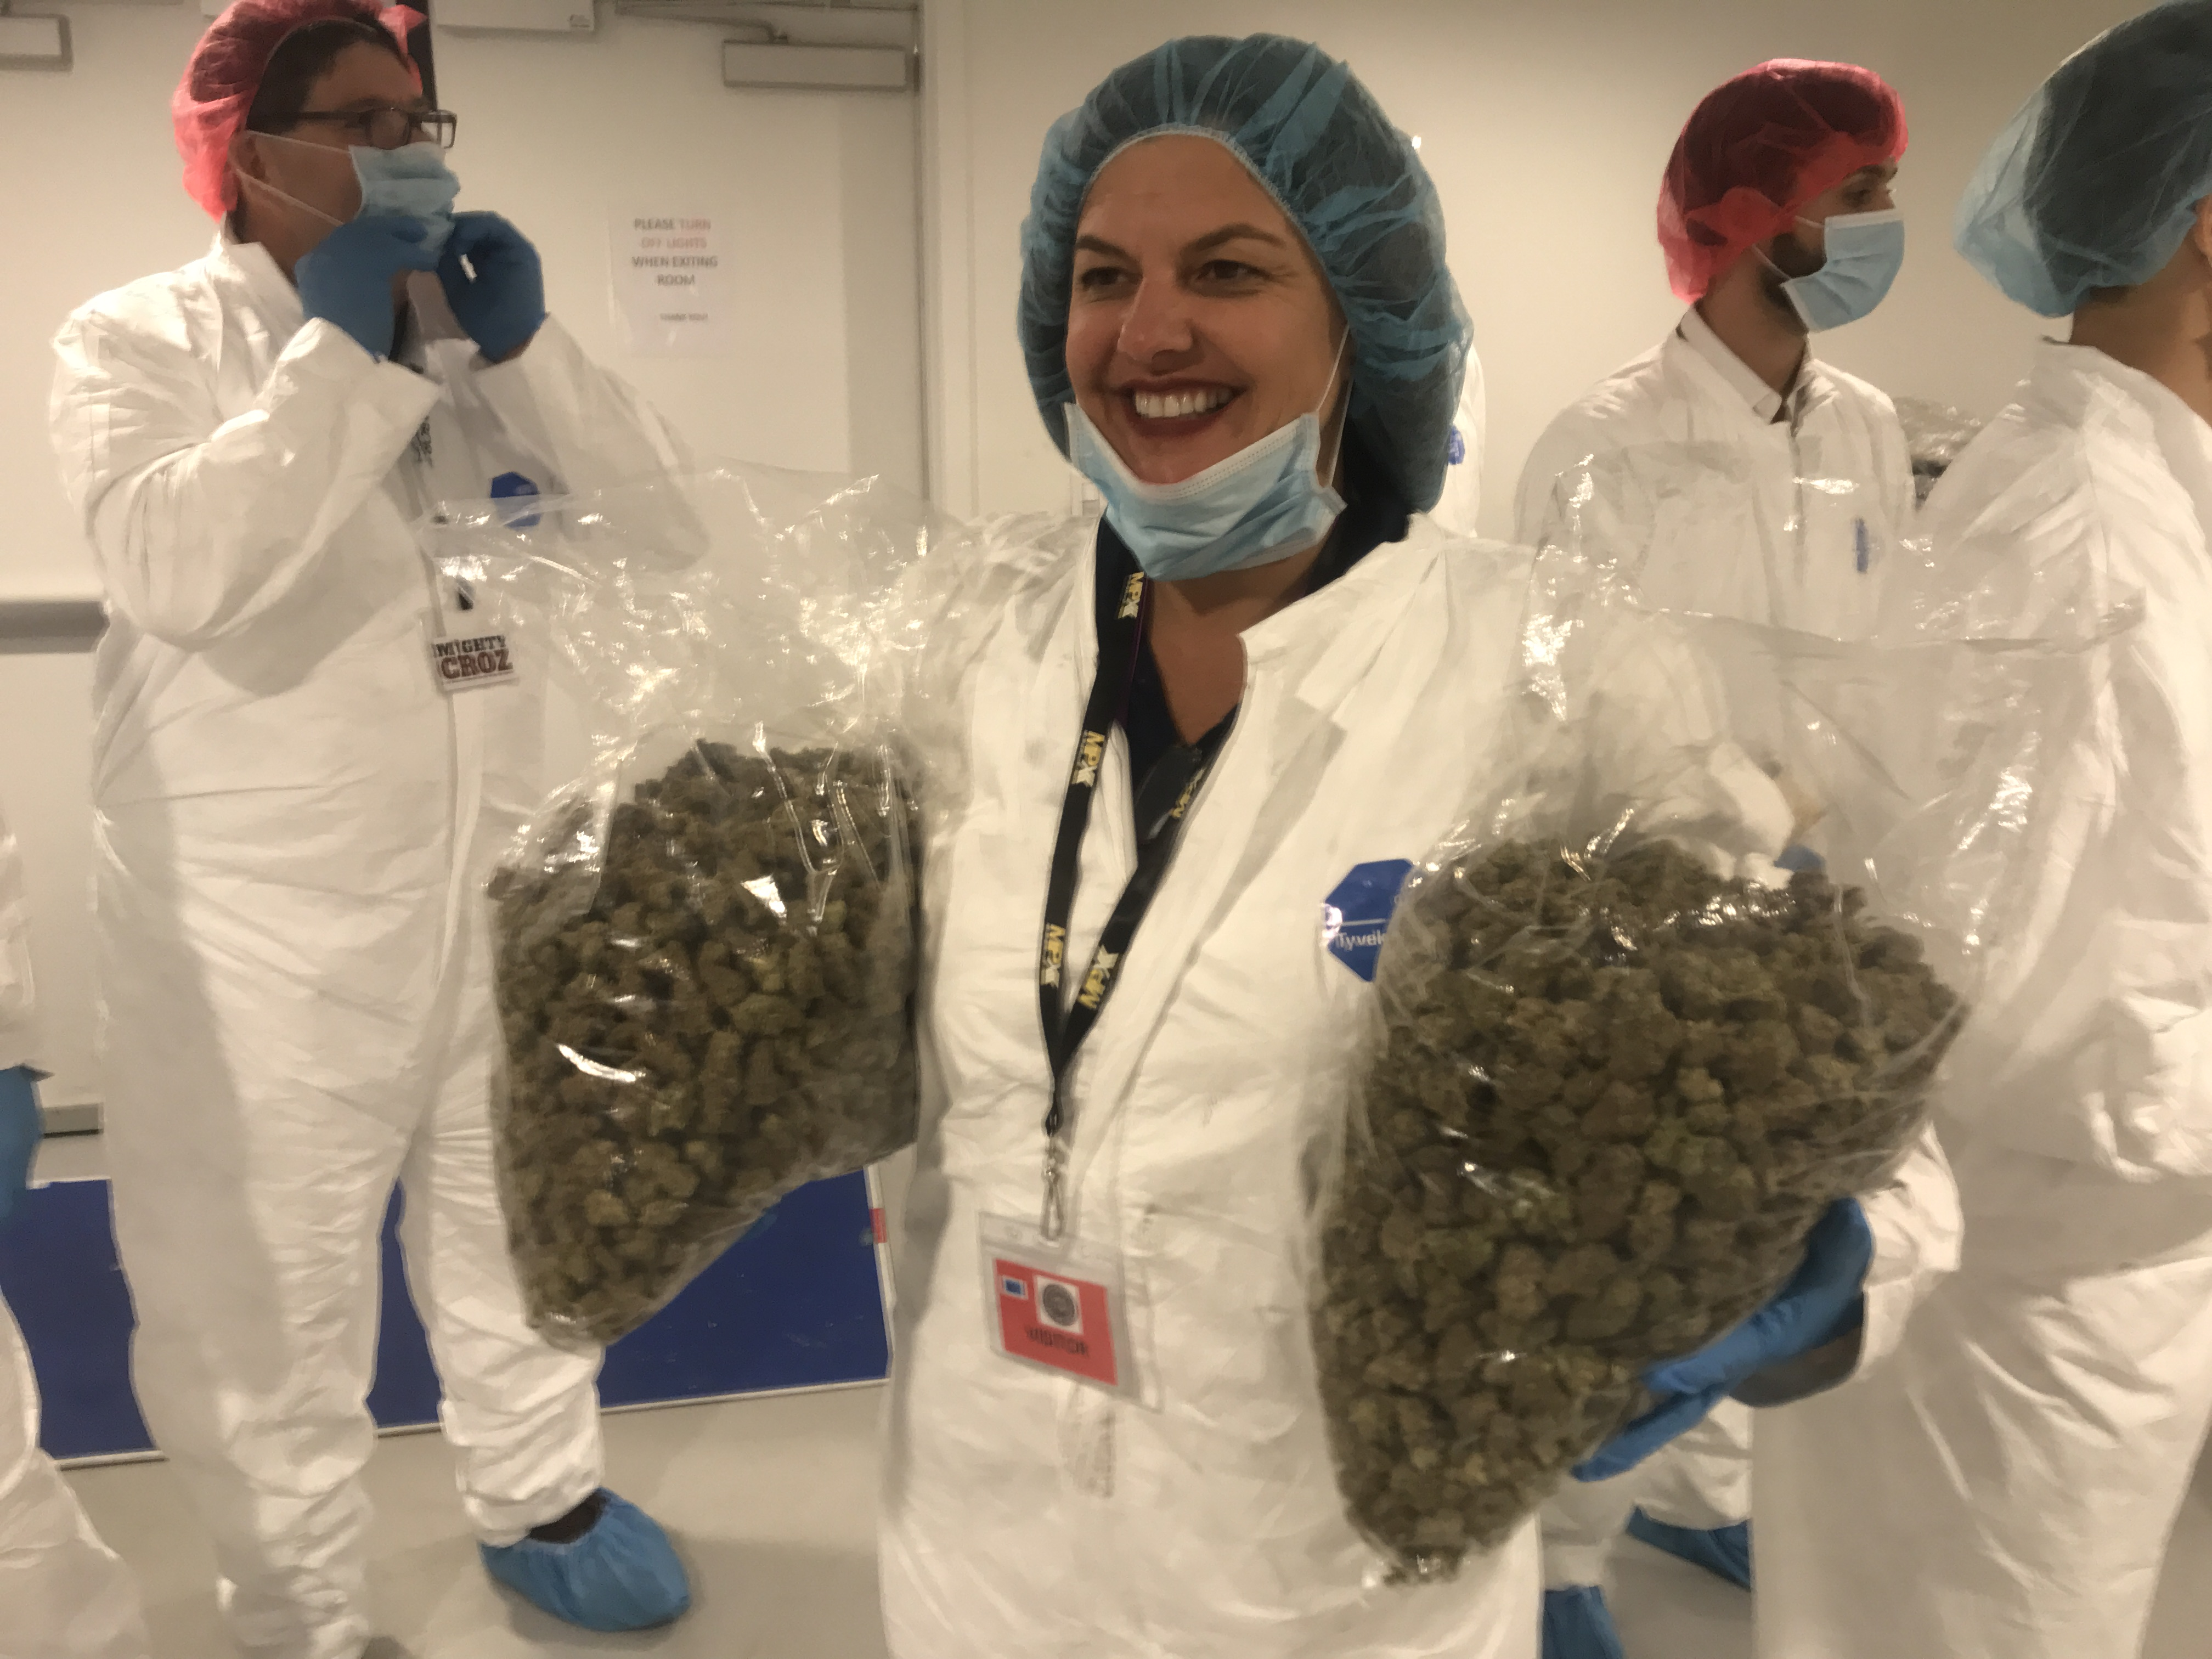 """Chris Visco, Pennsylvania´s Queen of Cannabis, took a tour of the iAnthus marijuana grow in North Las Vegas in mid-November. Here she holds two bags of flower. Asked how much that represented in sales at her TerraVida shops, she quipped """"Not even a week."""""""